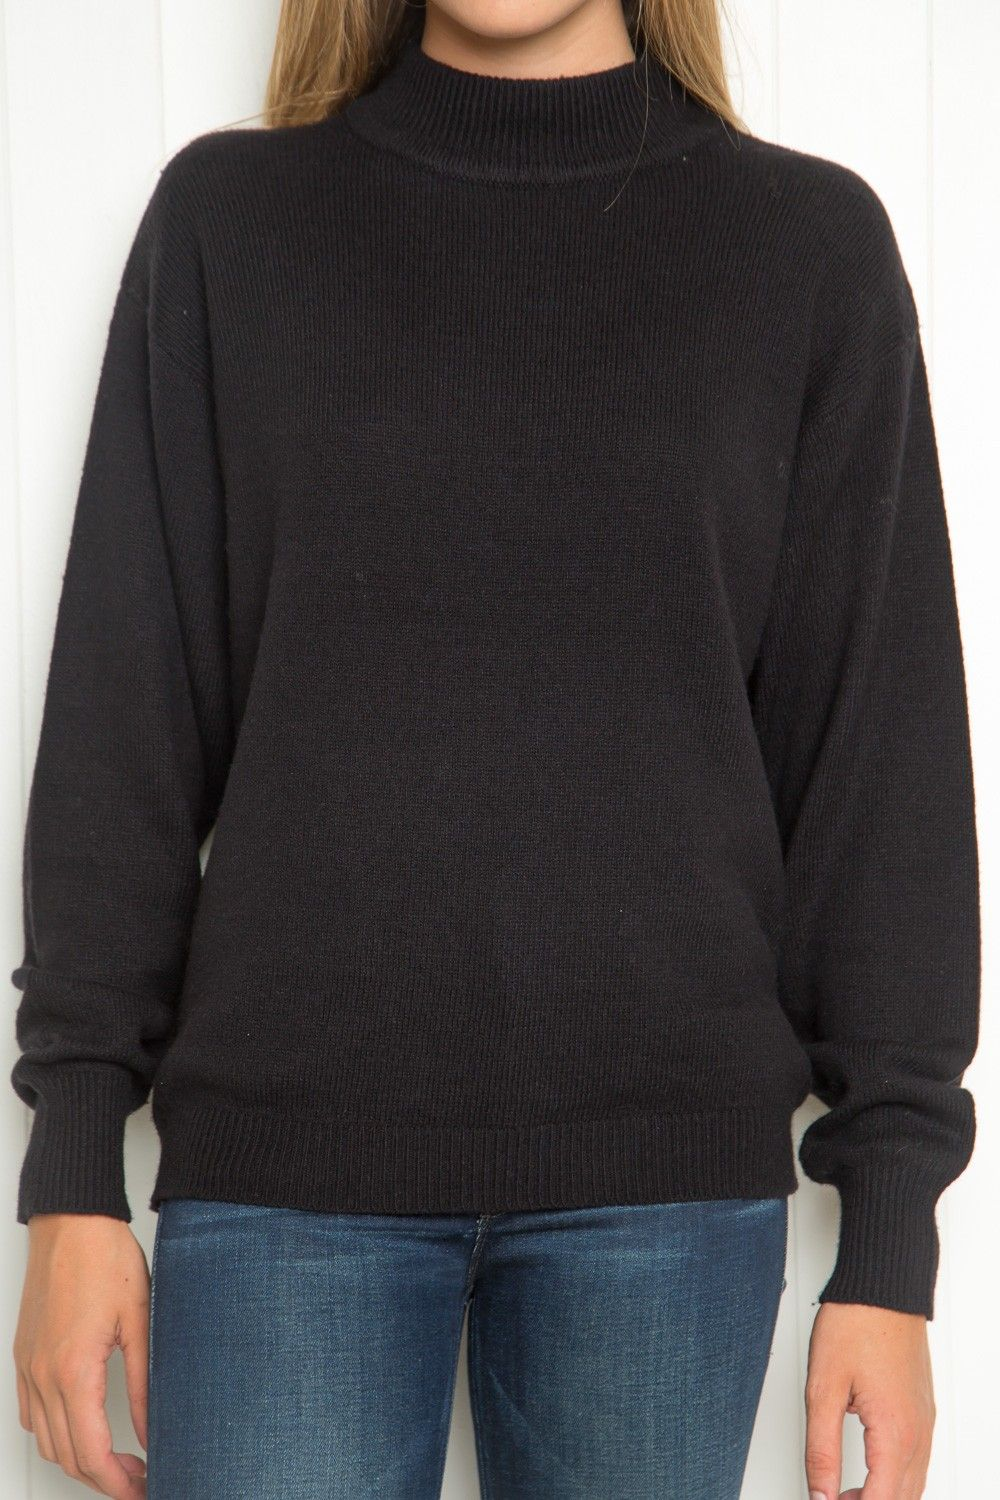 Brandy ♥ Melville | Bennett Turtleneck Sweater - Clothing | New ...